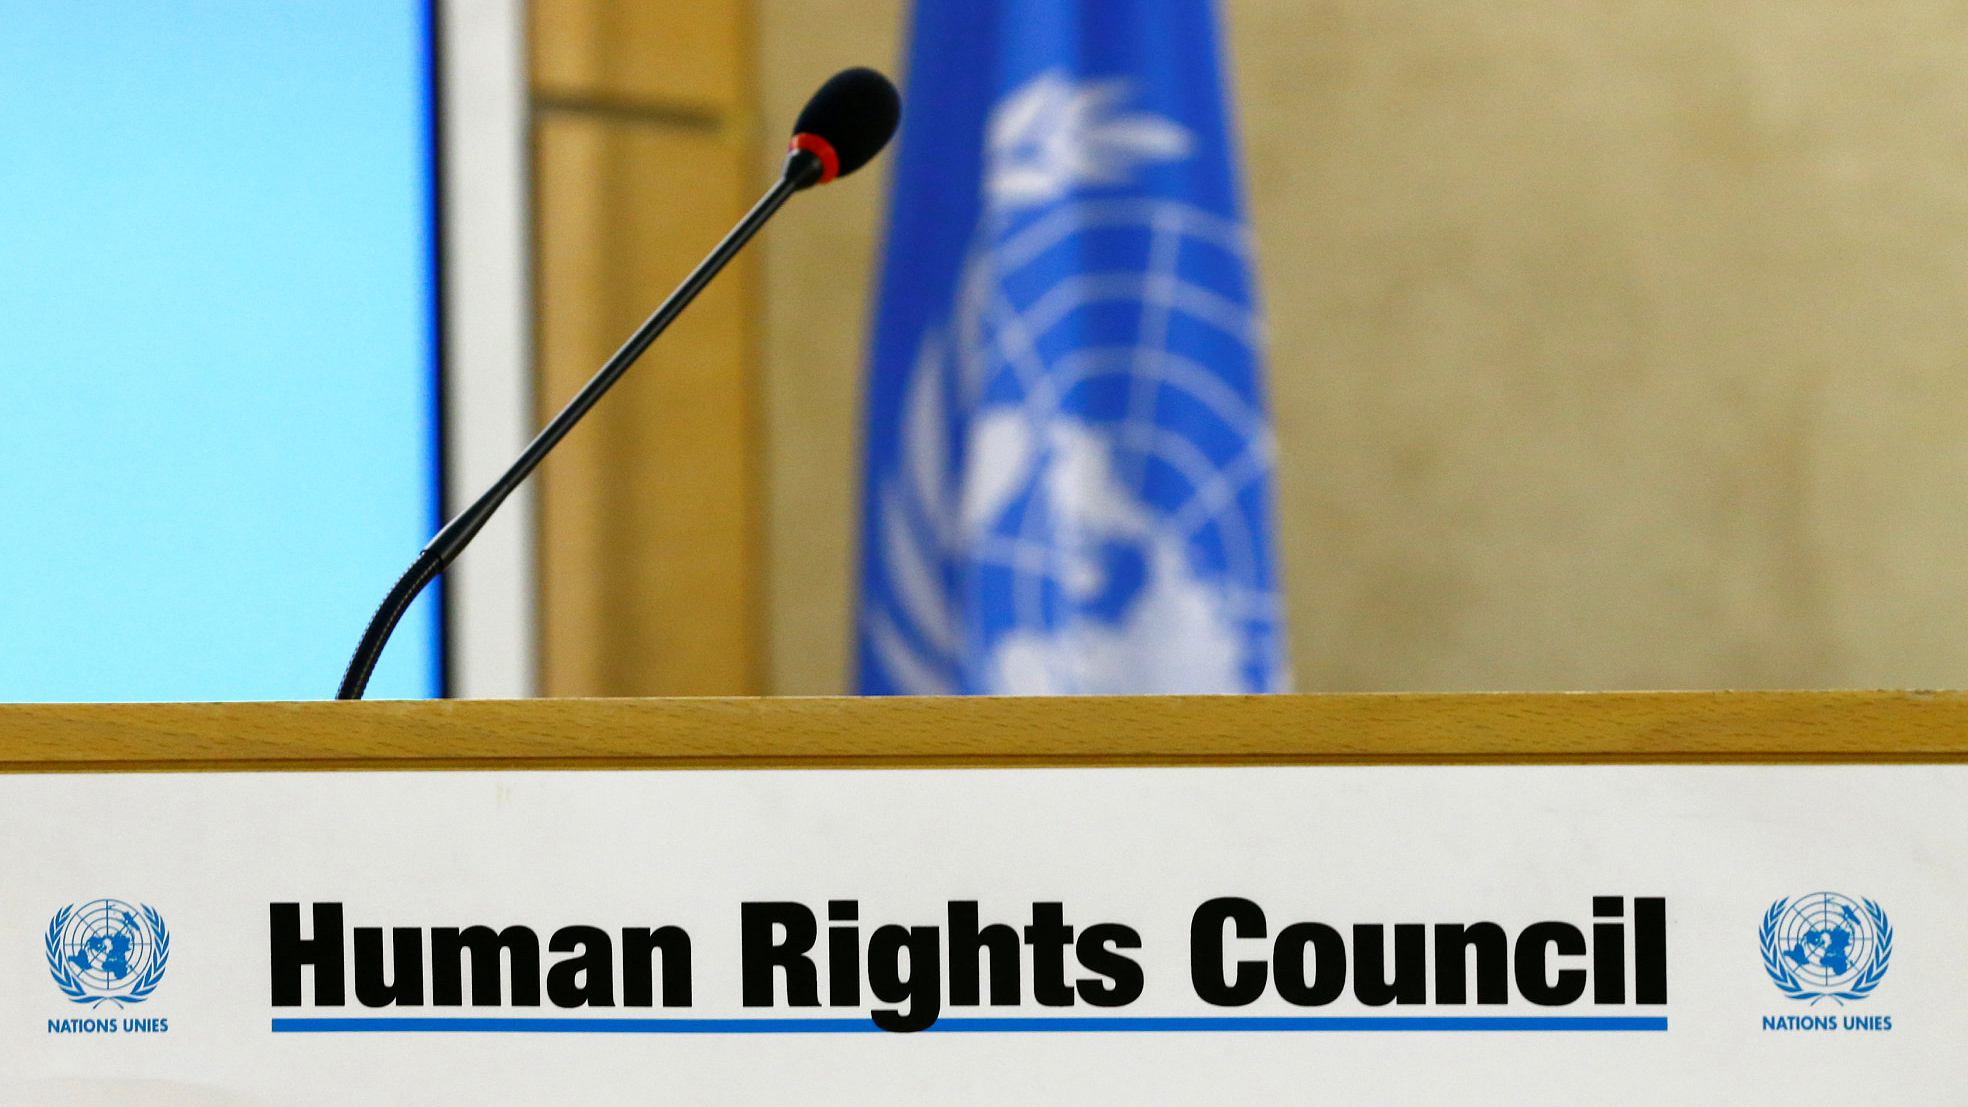 Human Rights Council elections to be held in UN General Assembly Hall